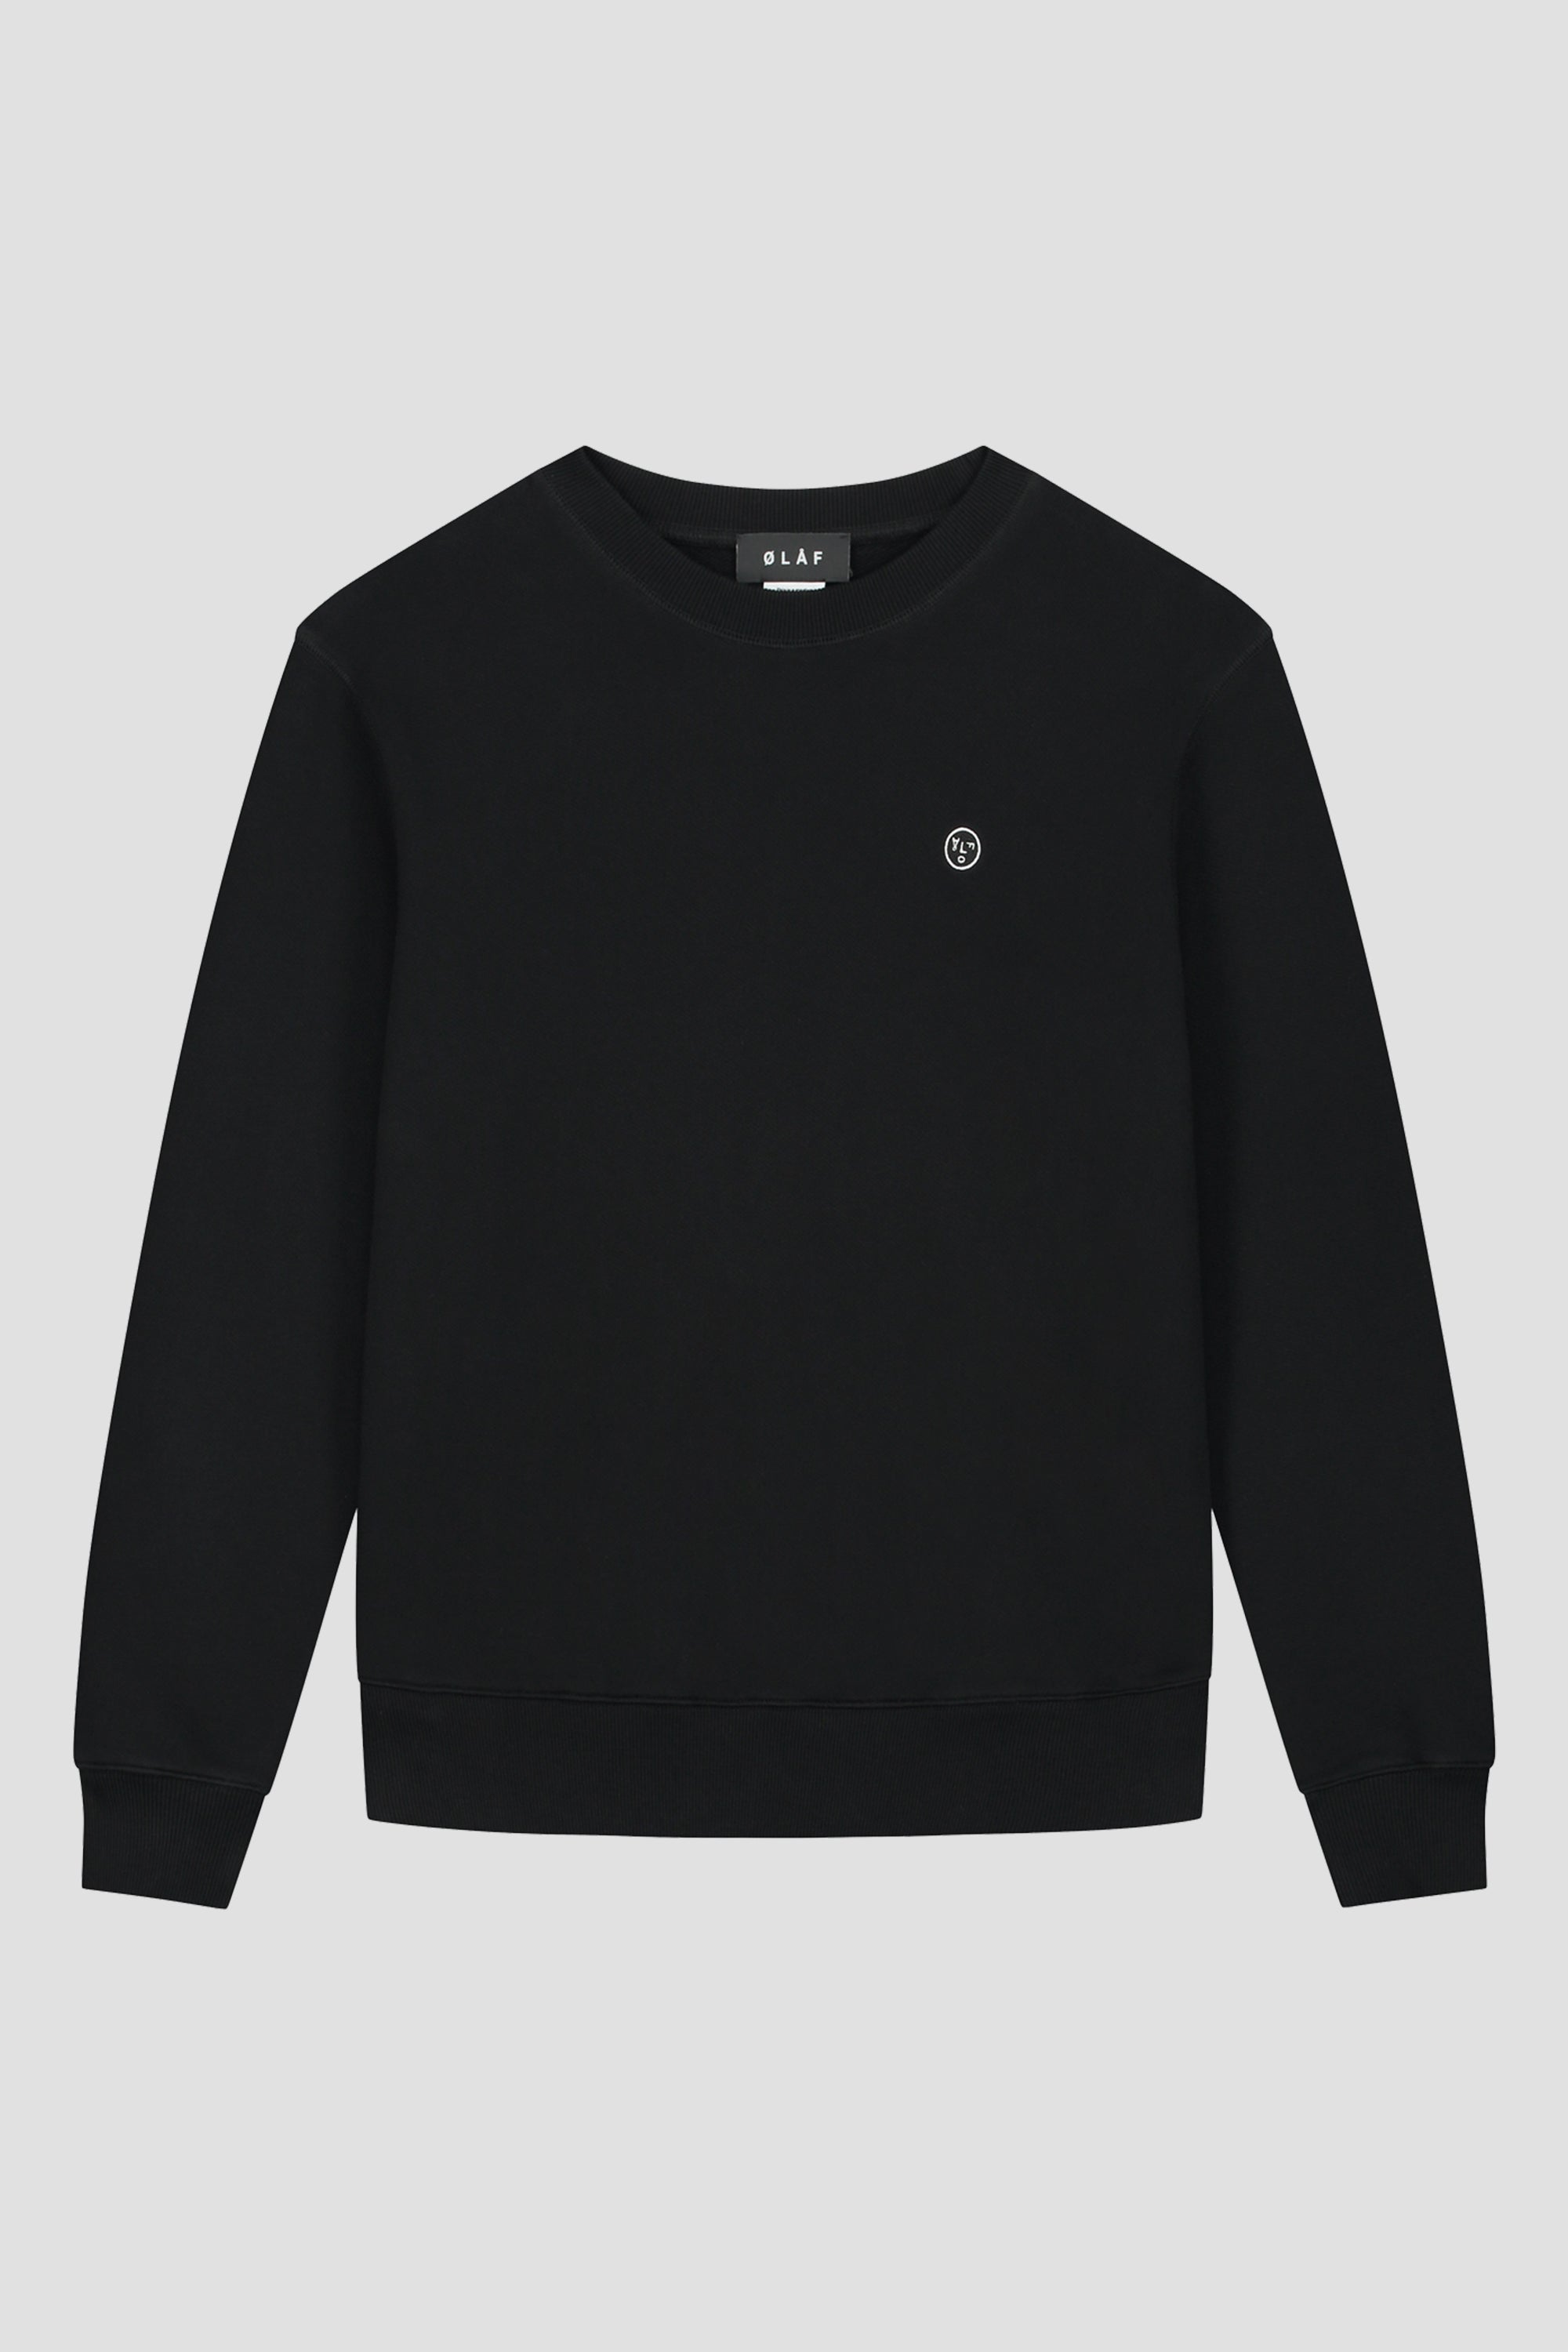 ØLÅF Face Crewneck <br>Black